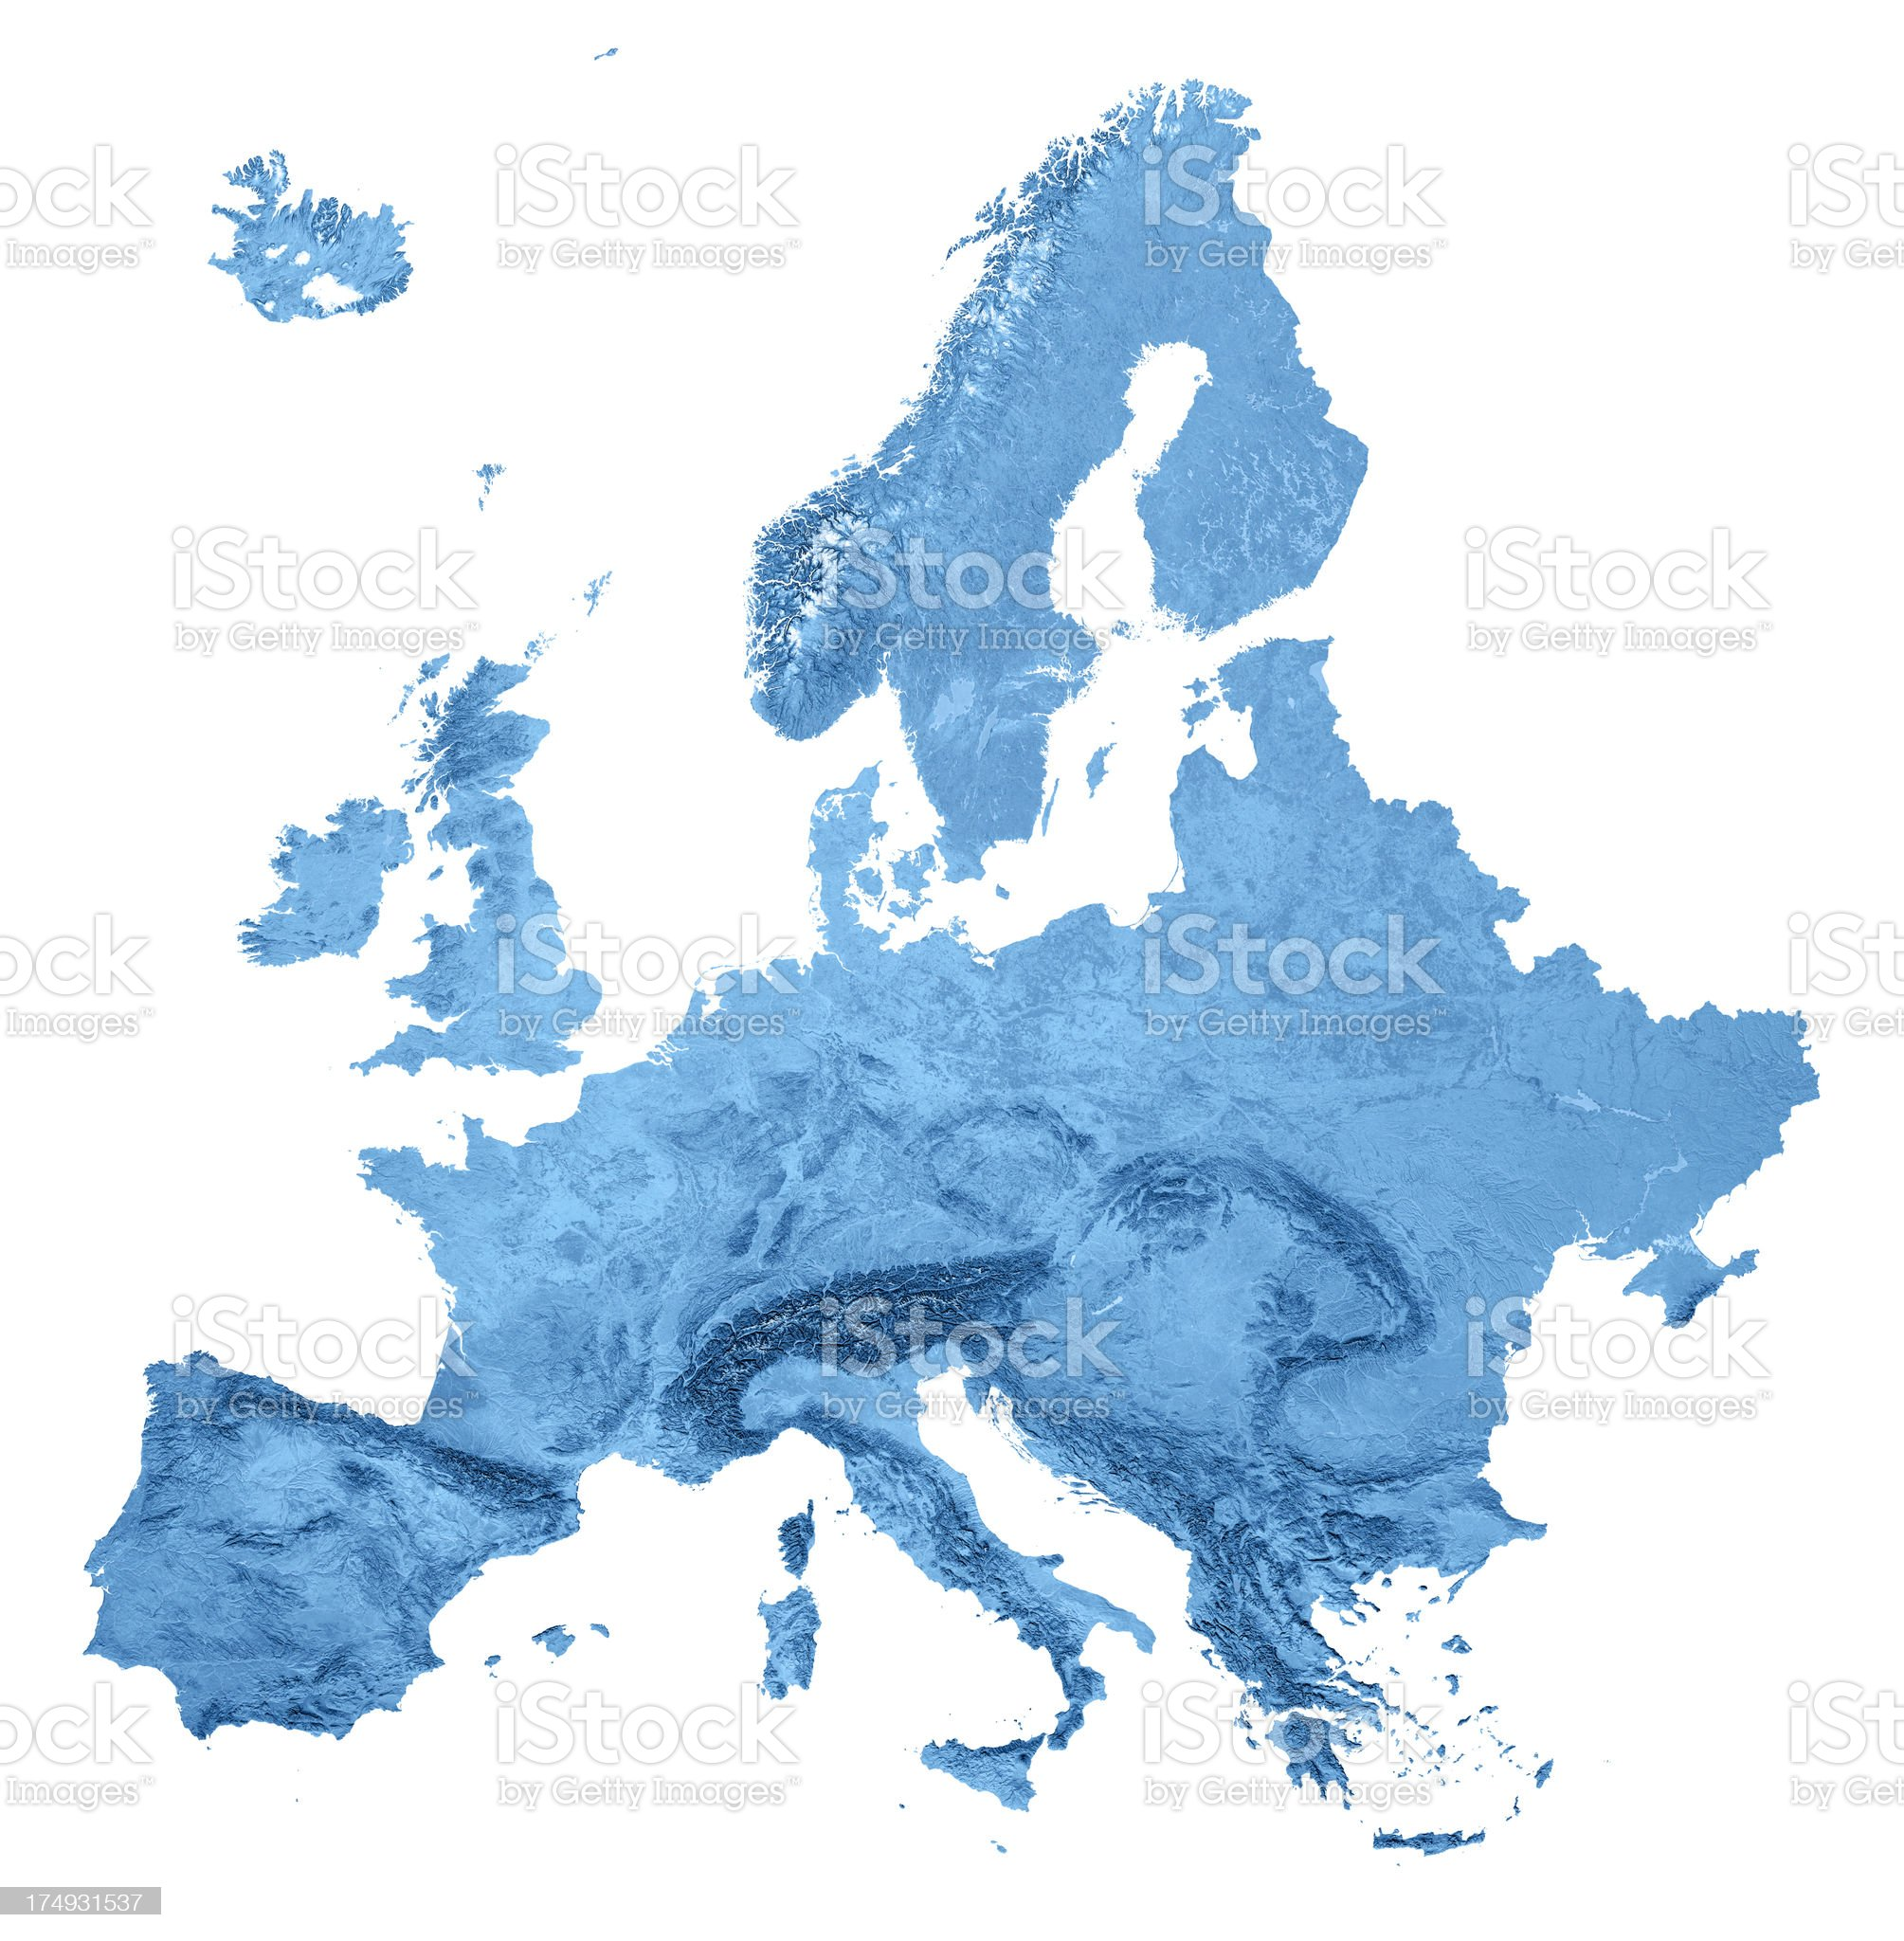 Europe Topographic Map Isolated royalty-free stock photo